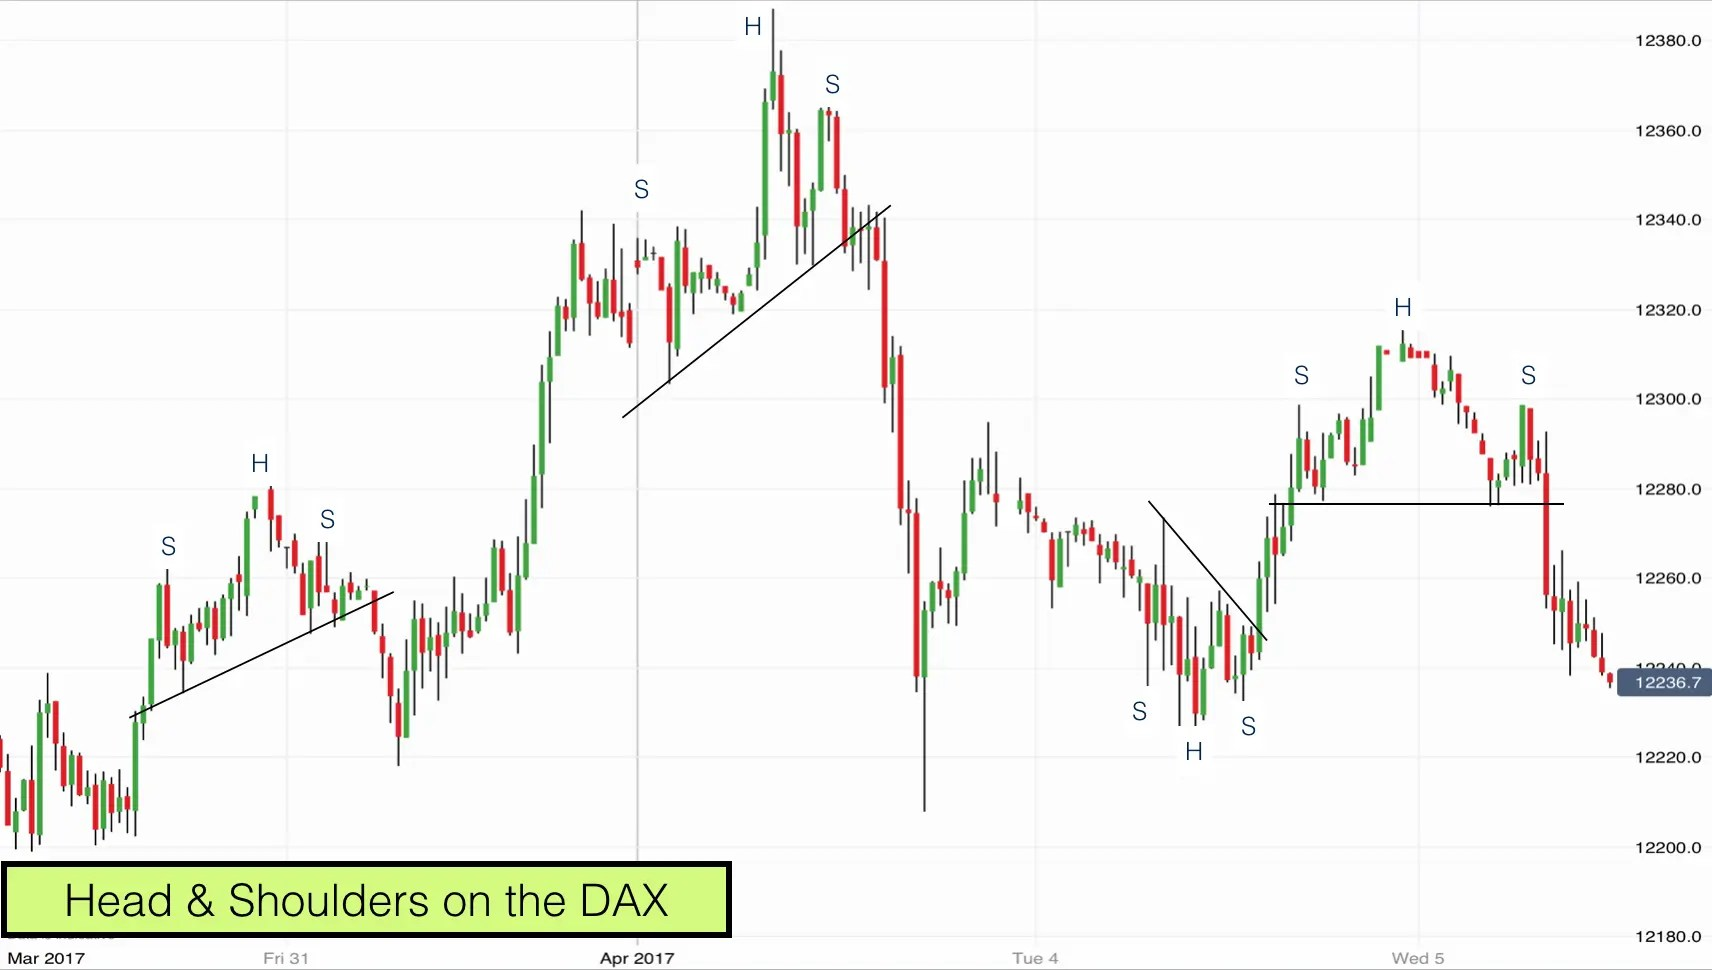 hight resolution of head shoulders chart patterns on the dax april 2017